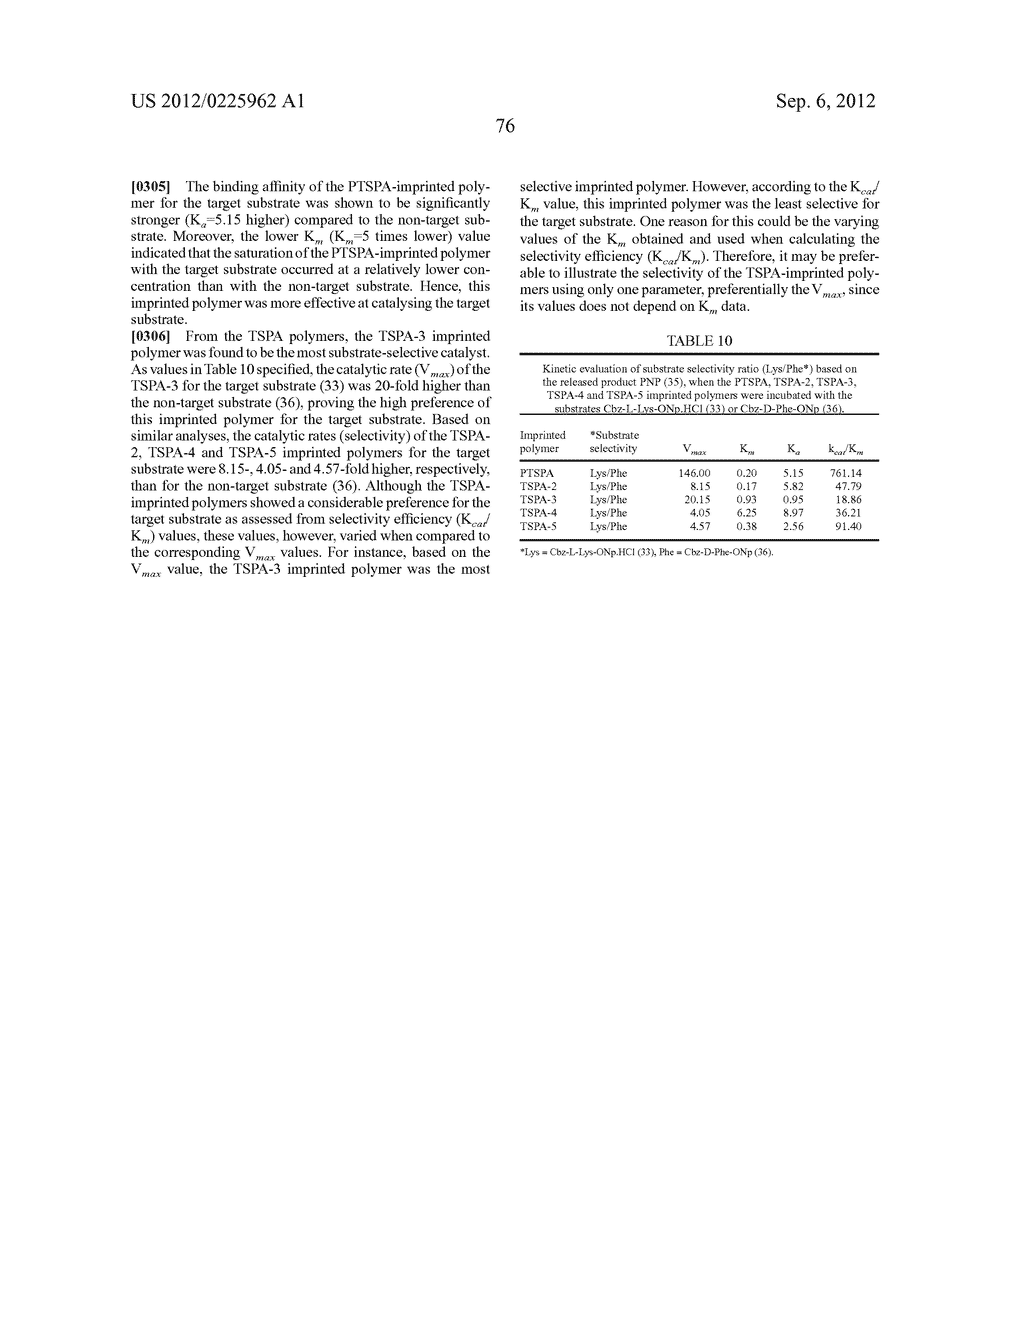 MOLECULARLY IMPRINTED POLYMERS, METHODS FOR THEIR PRODUCTION AND USES     THEREOF - diagram, schematic, and image 81